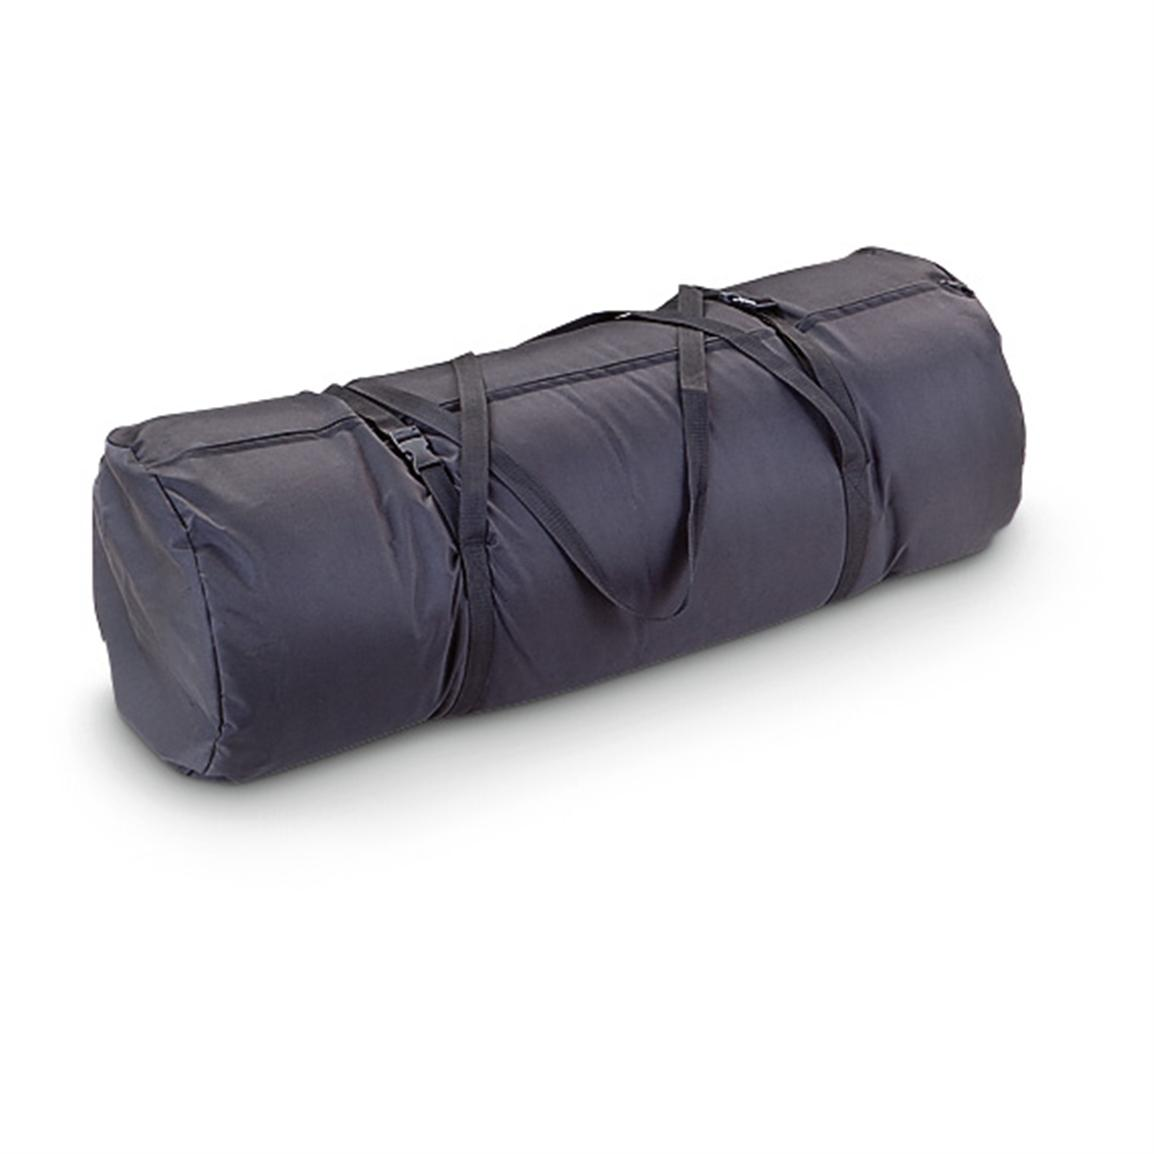 Duffel bag makes travel easy